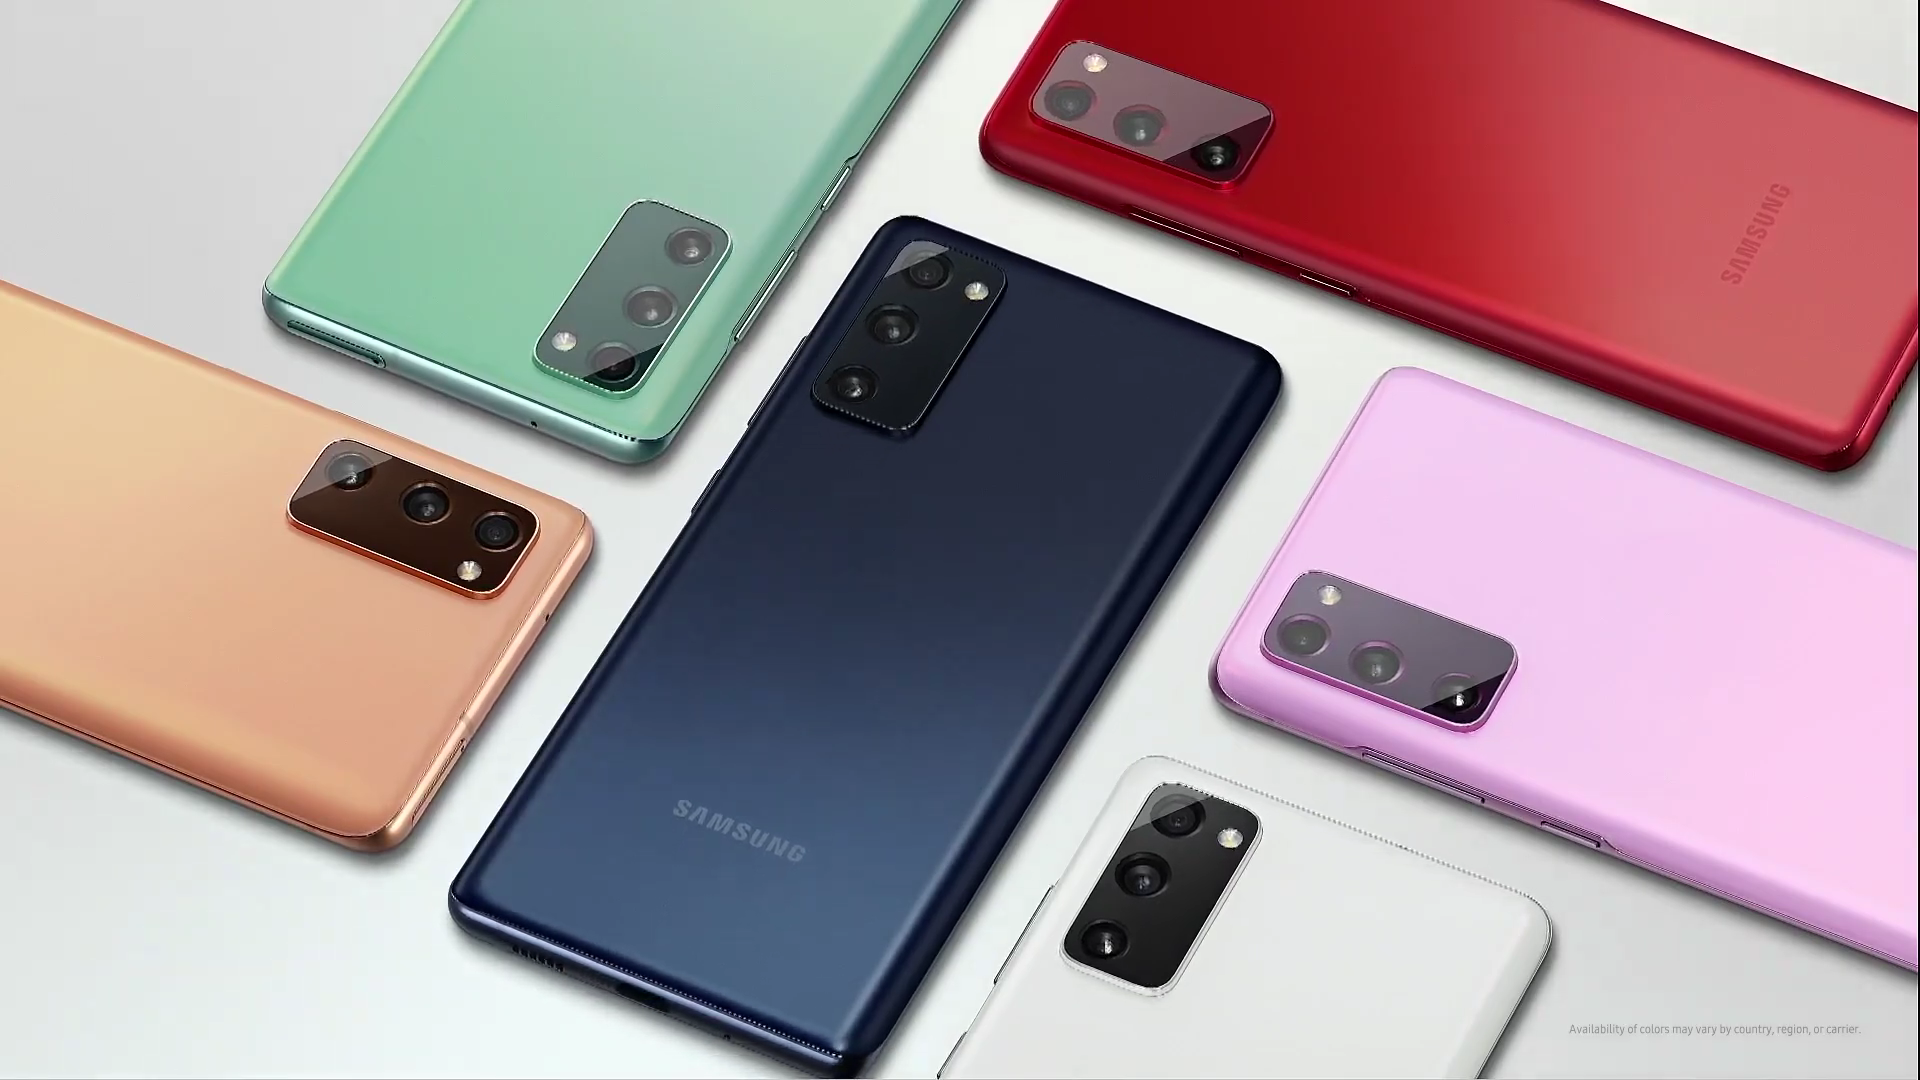 The Samsung Galaxy S20 Fe Google Pixel 4 And More Devices Are On Sale Today Just Android